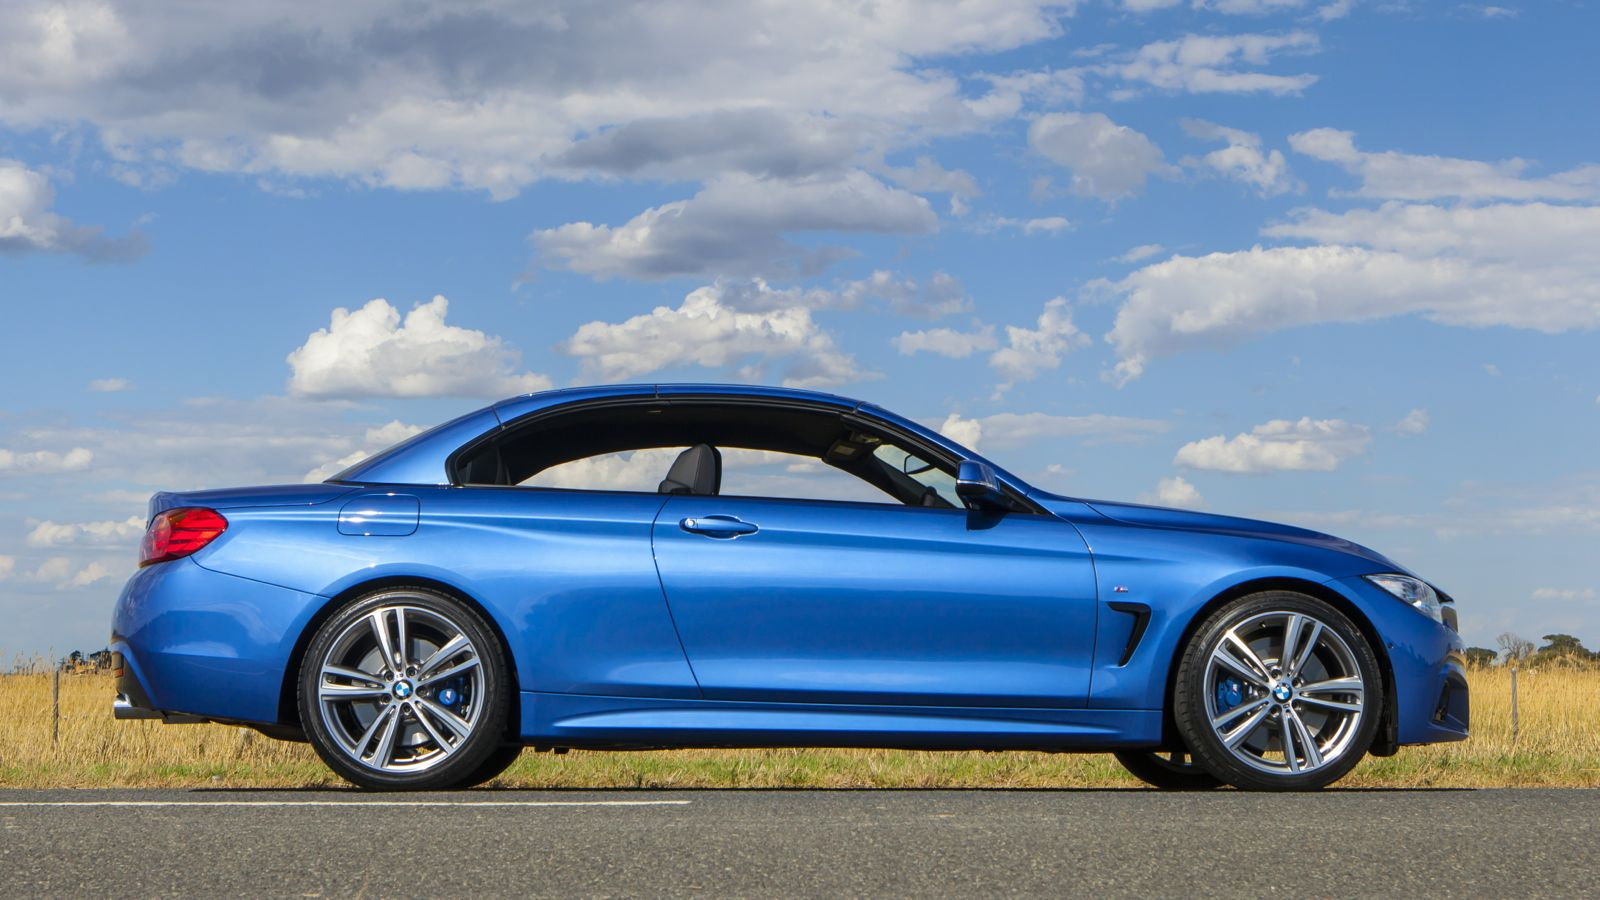 2019 BMW 4 Series Convertible photo - 1